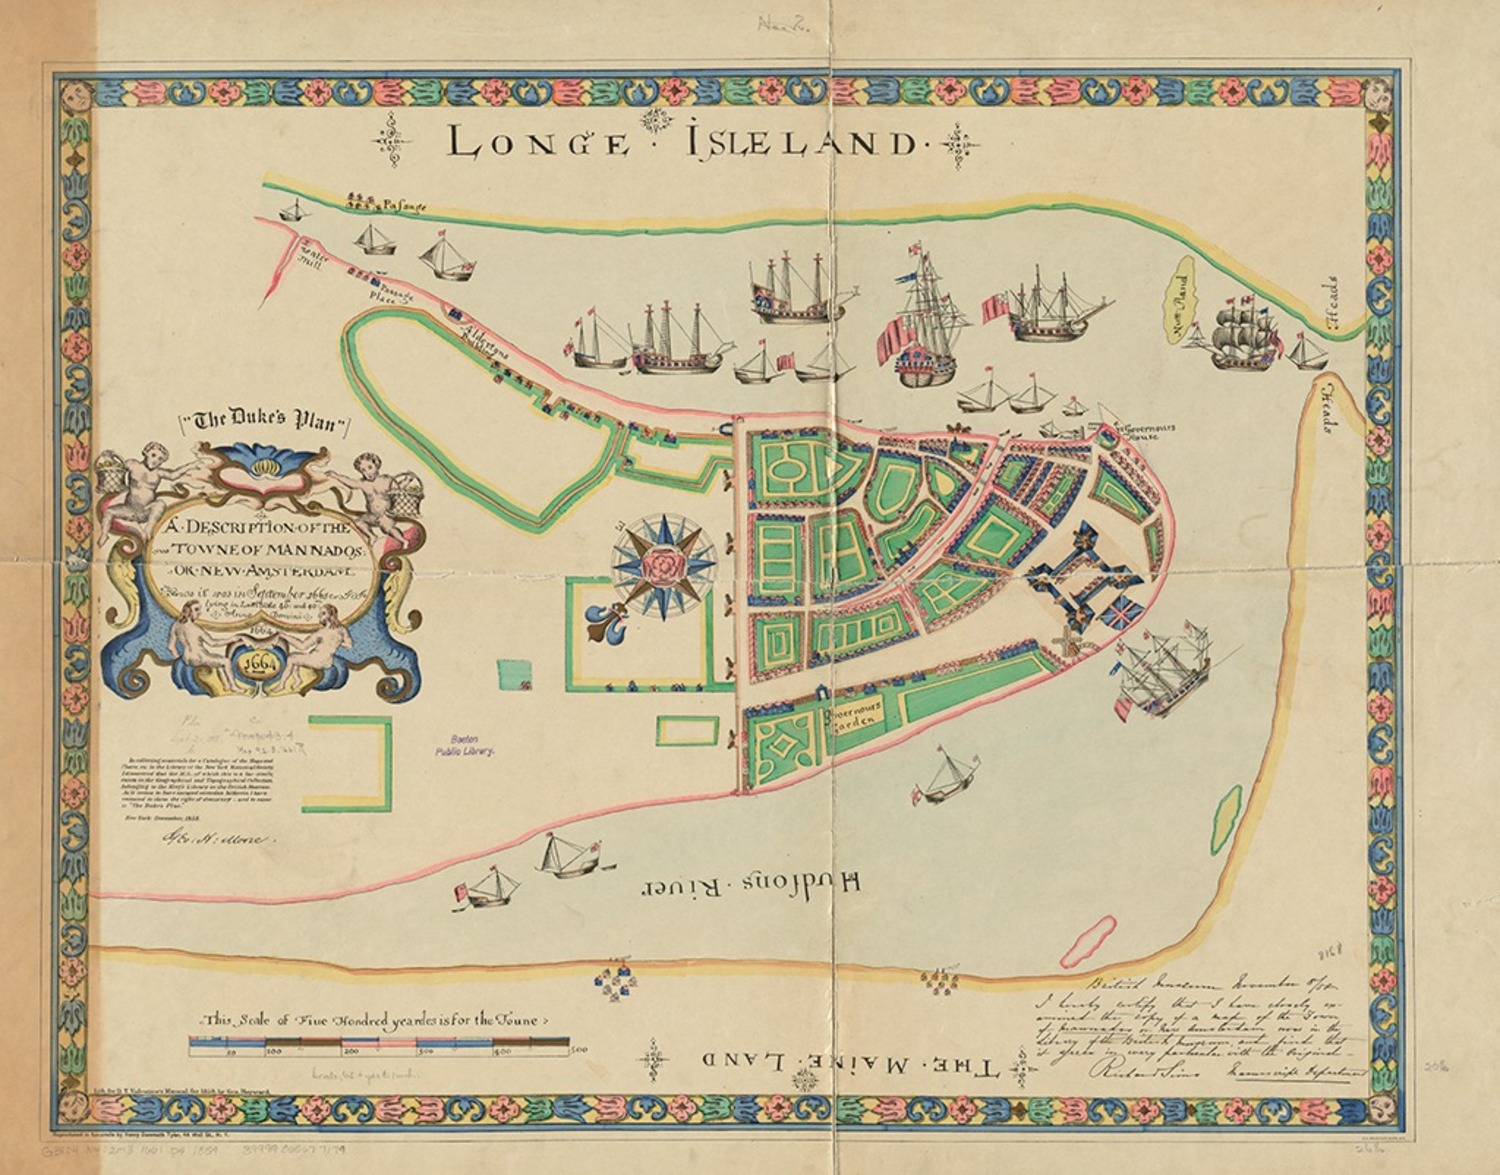 A description of the towne of Mannados or New Amsterdam, circa 1664